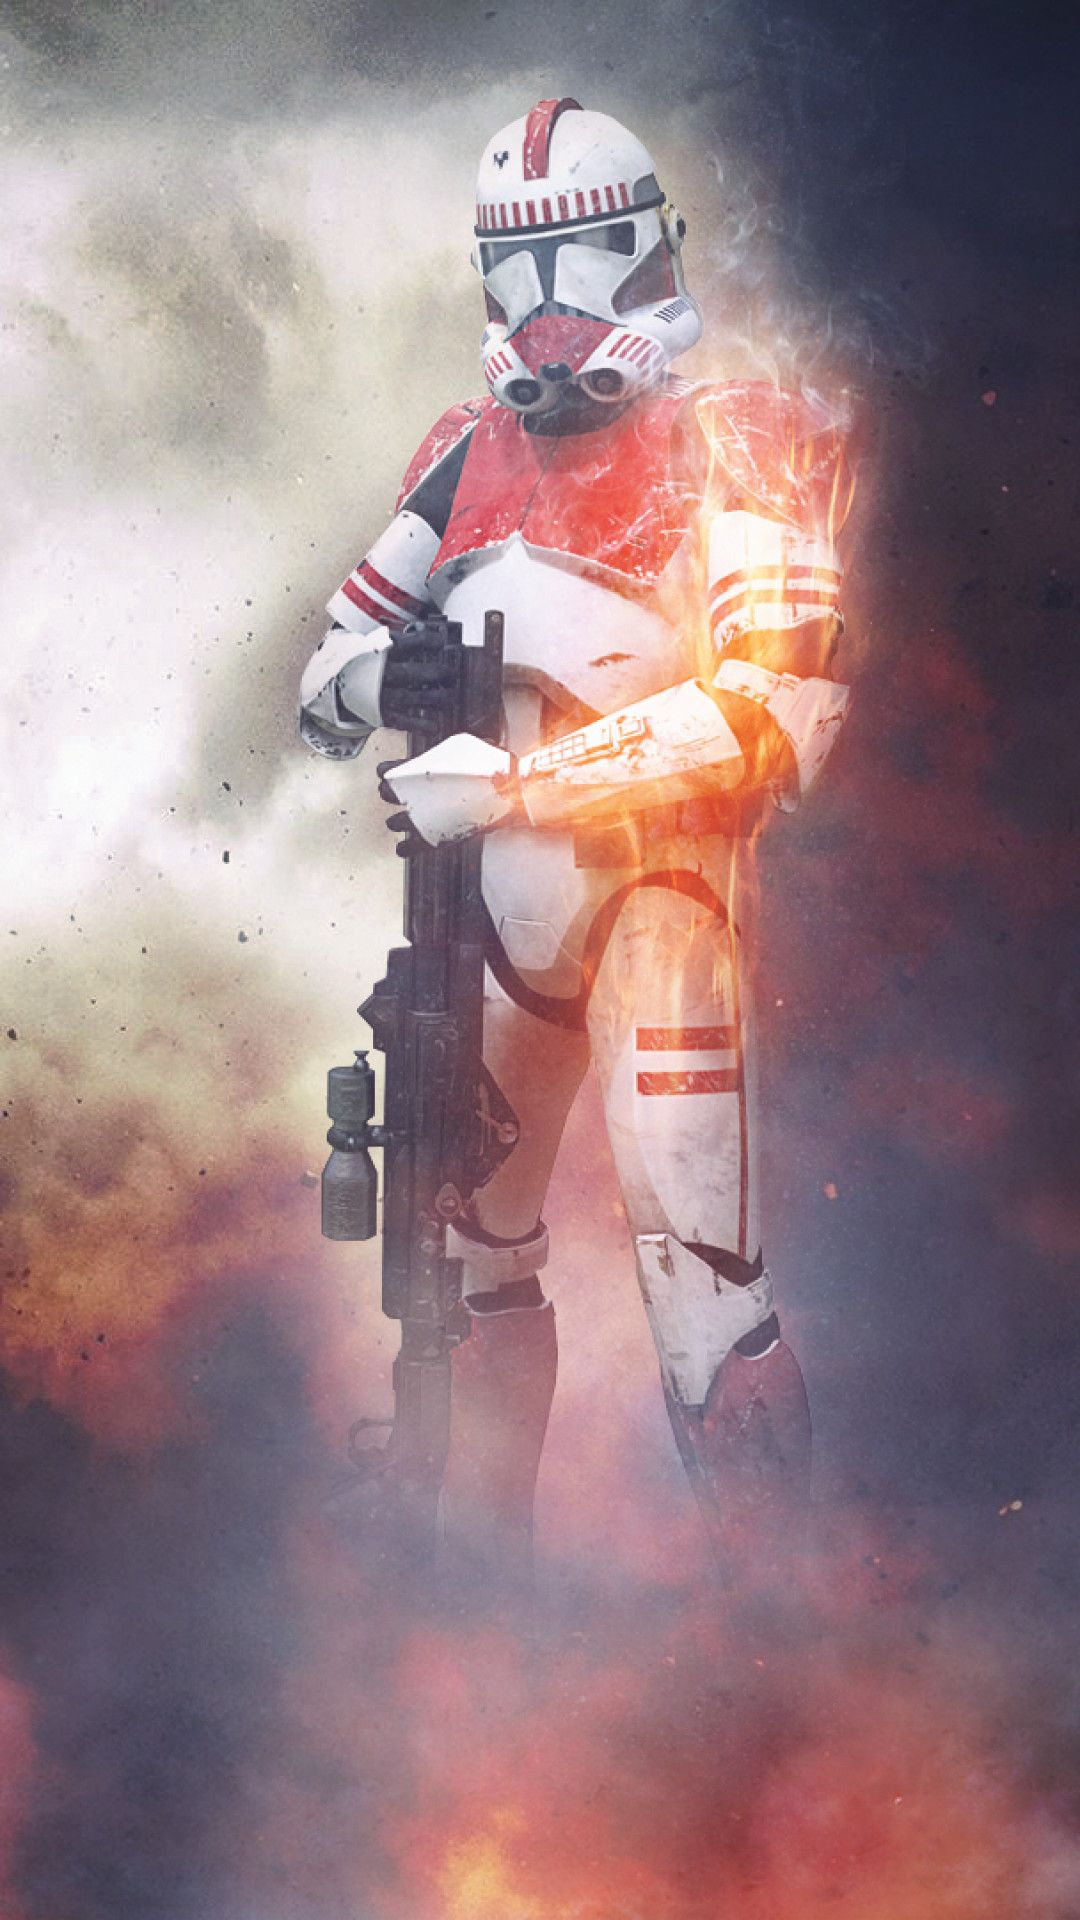 Clone Trooper Iphone Wallpaper 65 Images In 2020 Star Wars Wallpaper Star Wars Battlefront Iphone Wallpaper